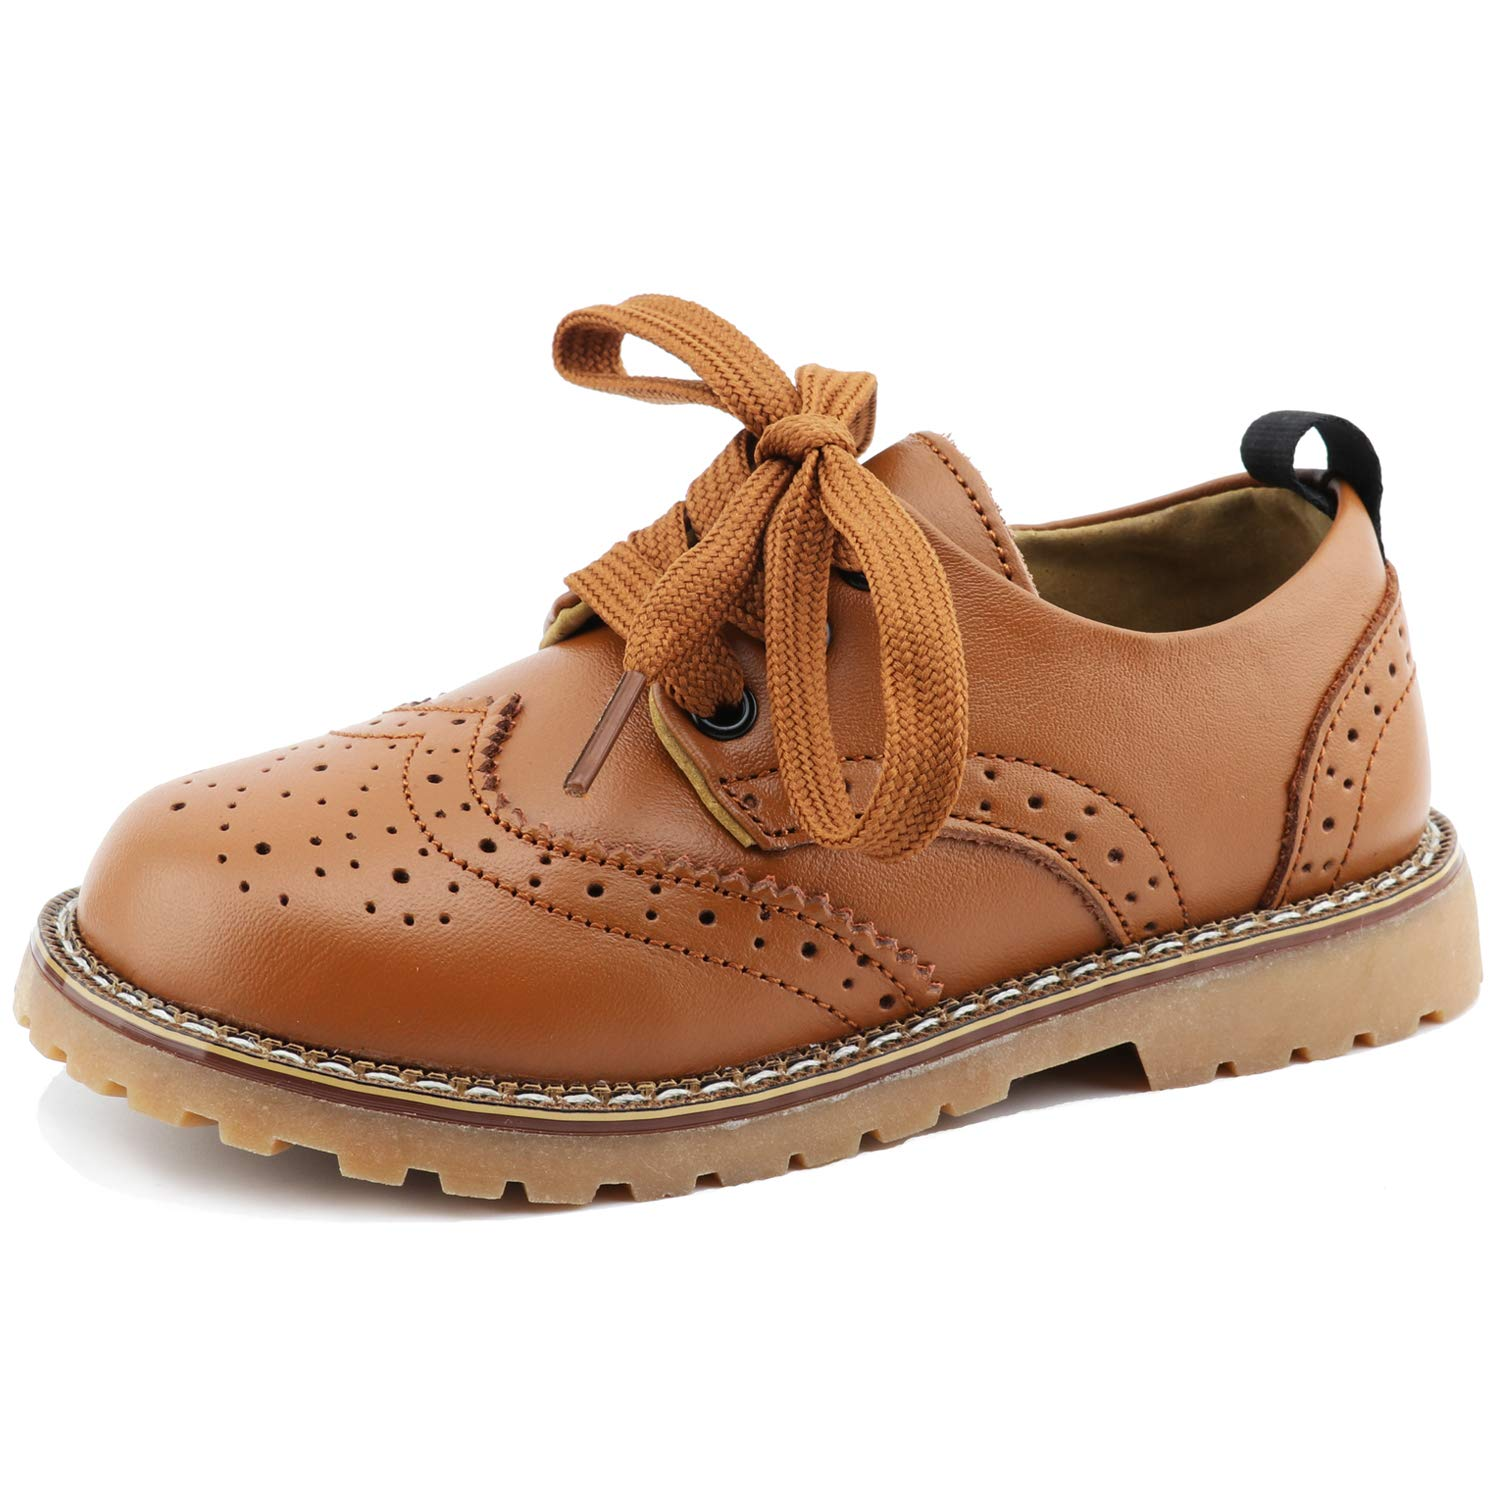 CCTWINS KIDS Toddler Little Kid Girl Boy Dress Oxford Leather Shoe(G9771-brown-29)